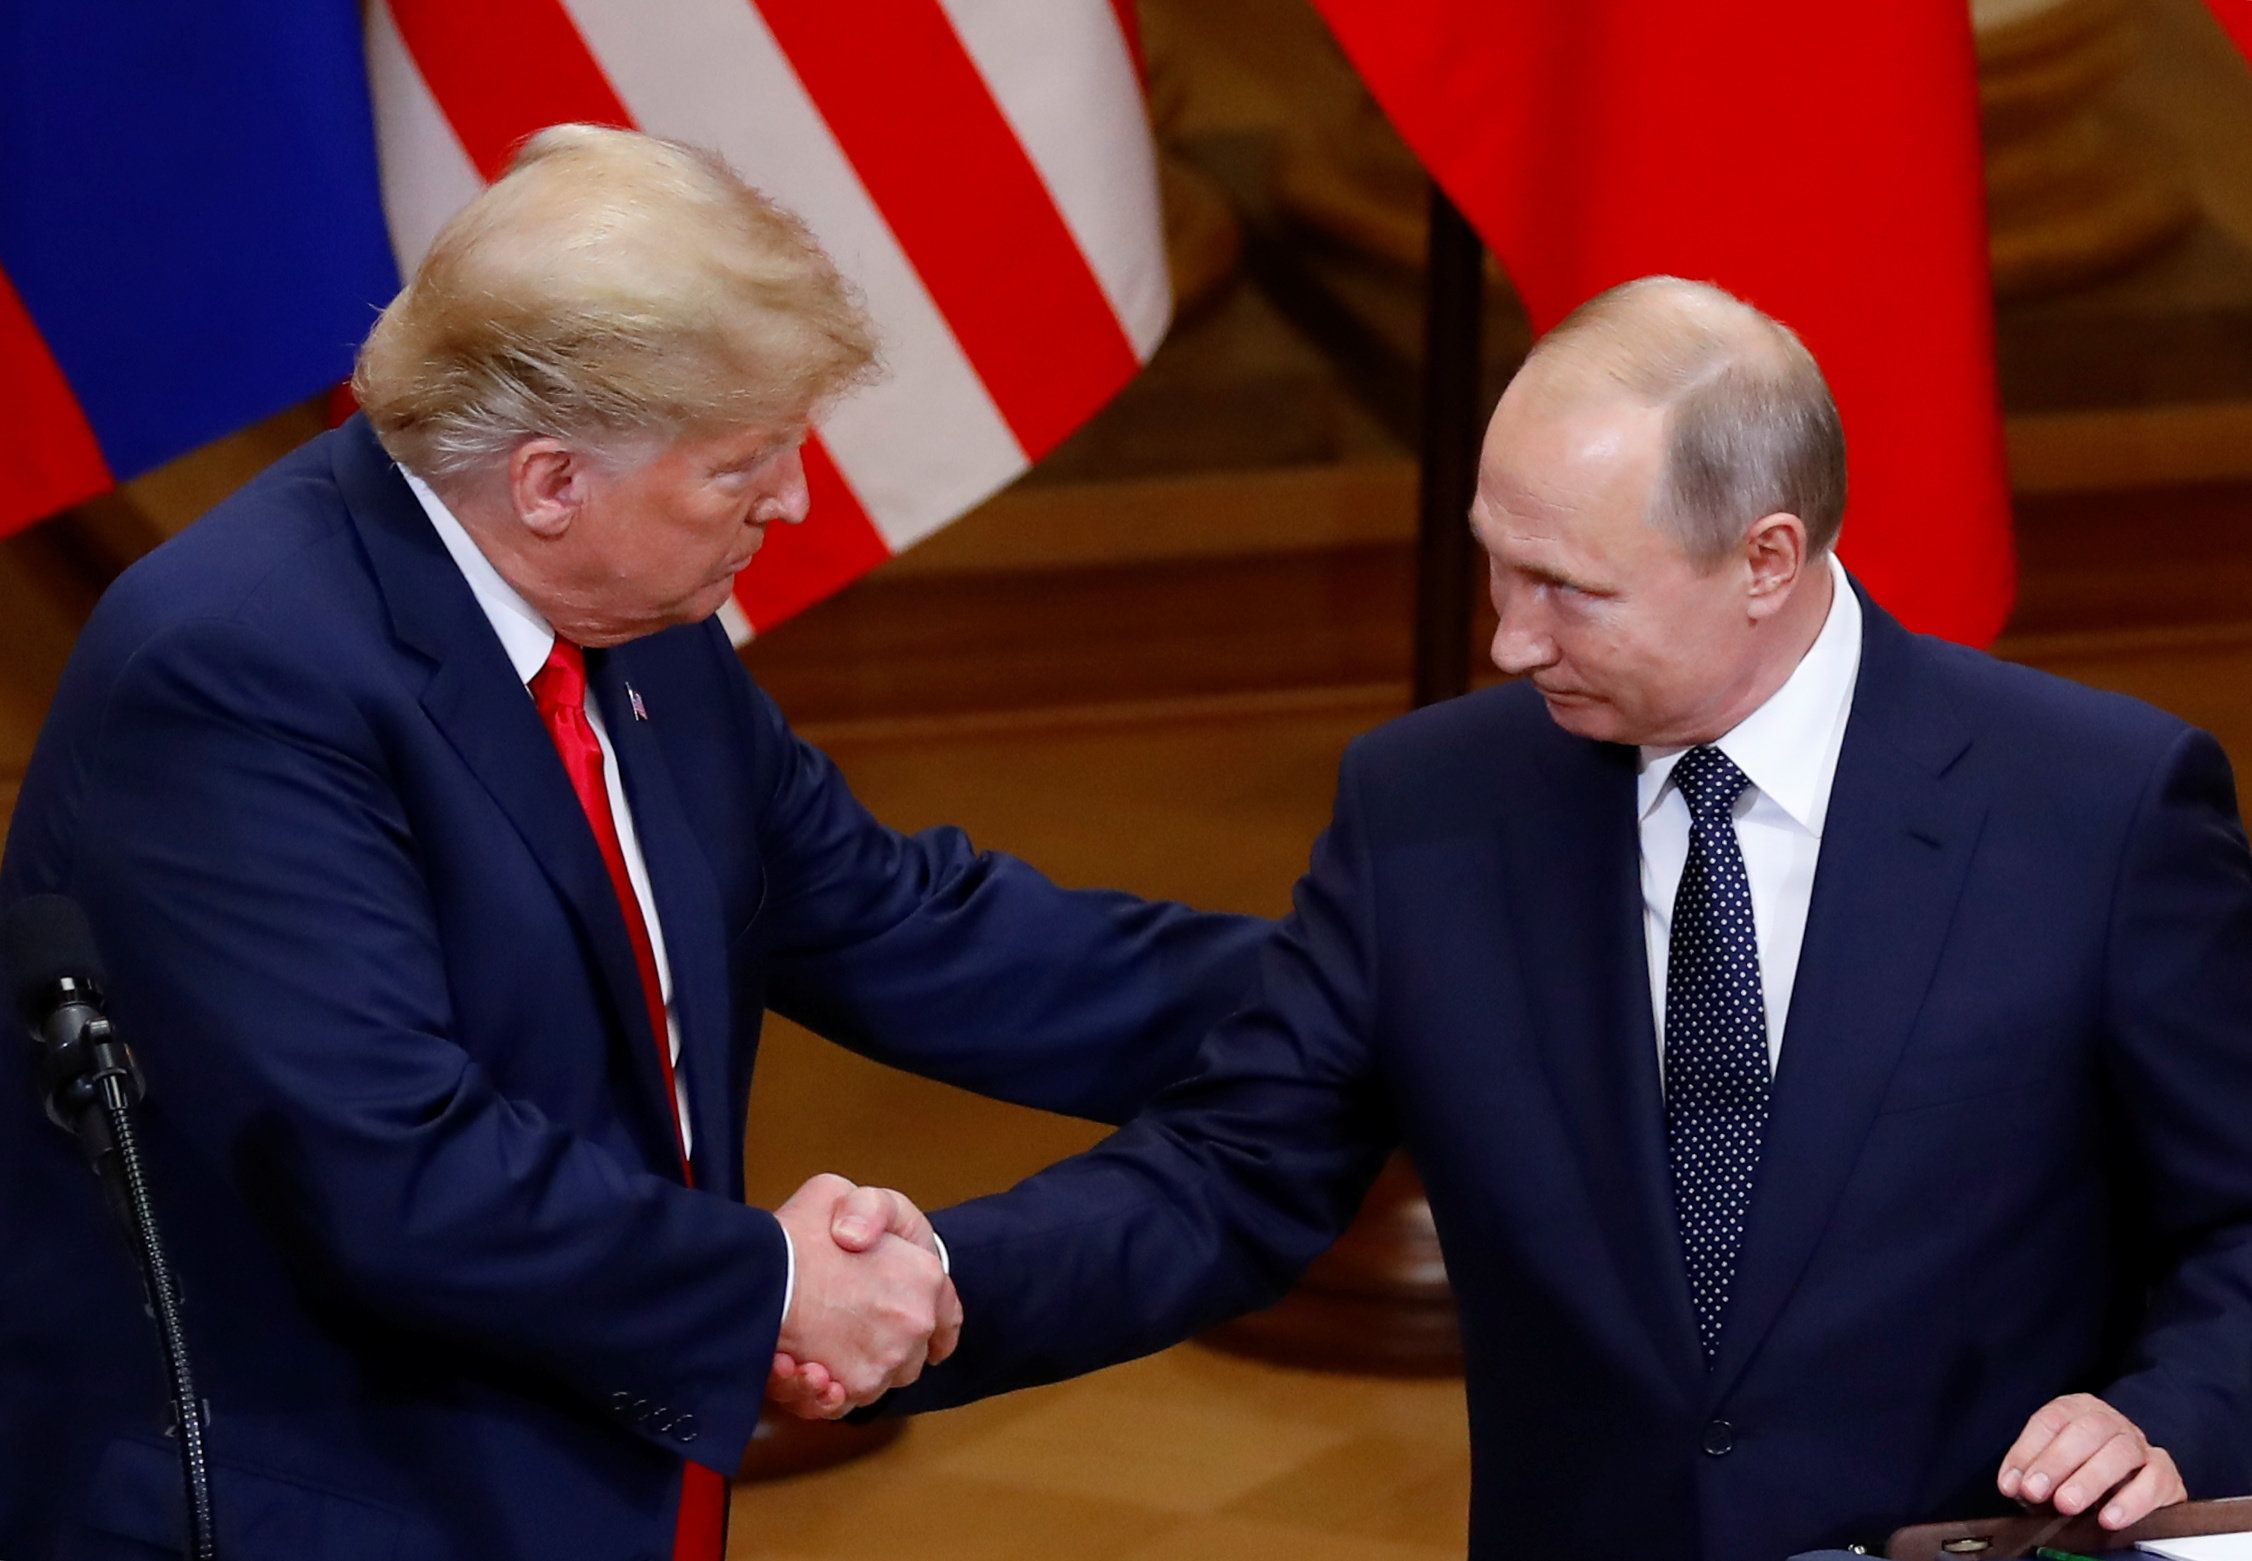 Helsinki summit: Trump condemns Russian Federation  probe after Putin talks